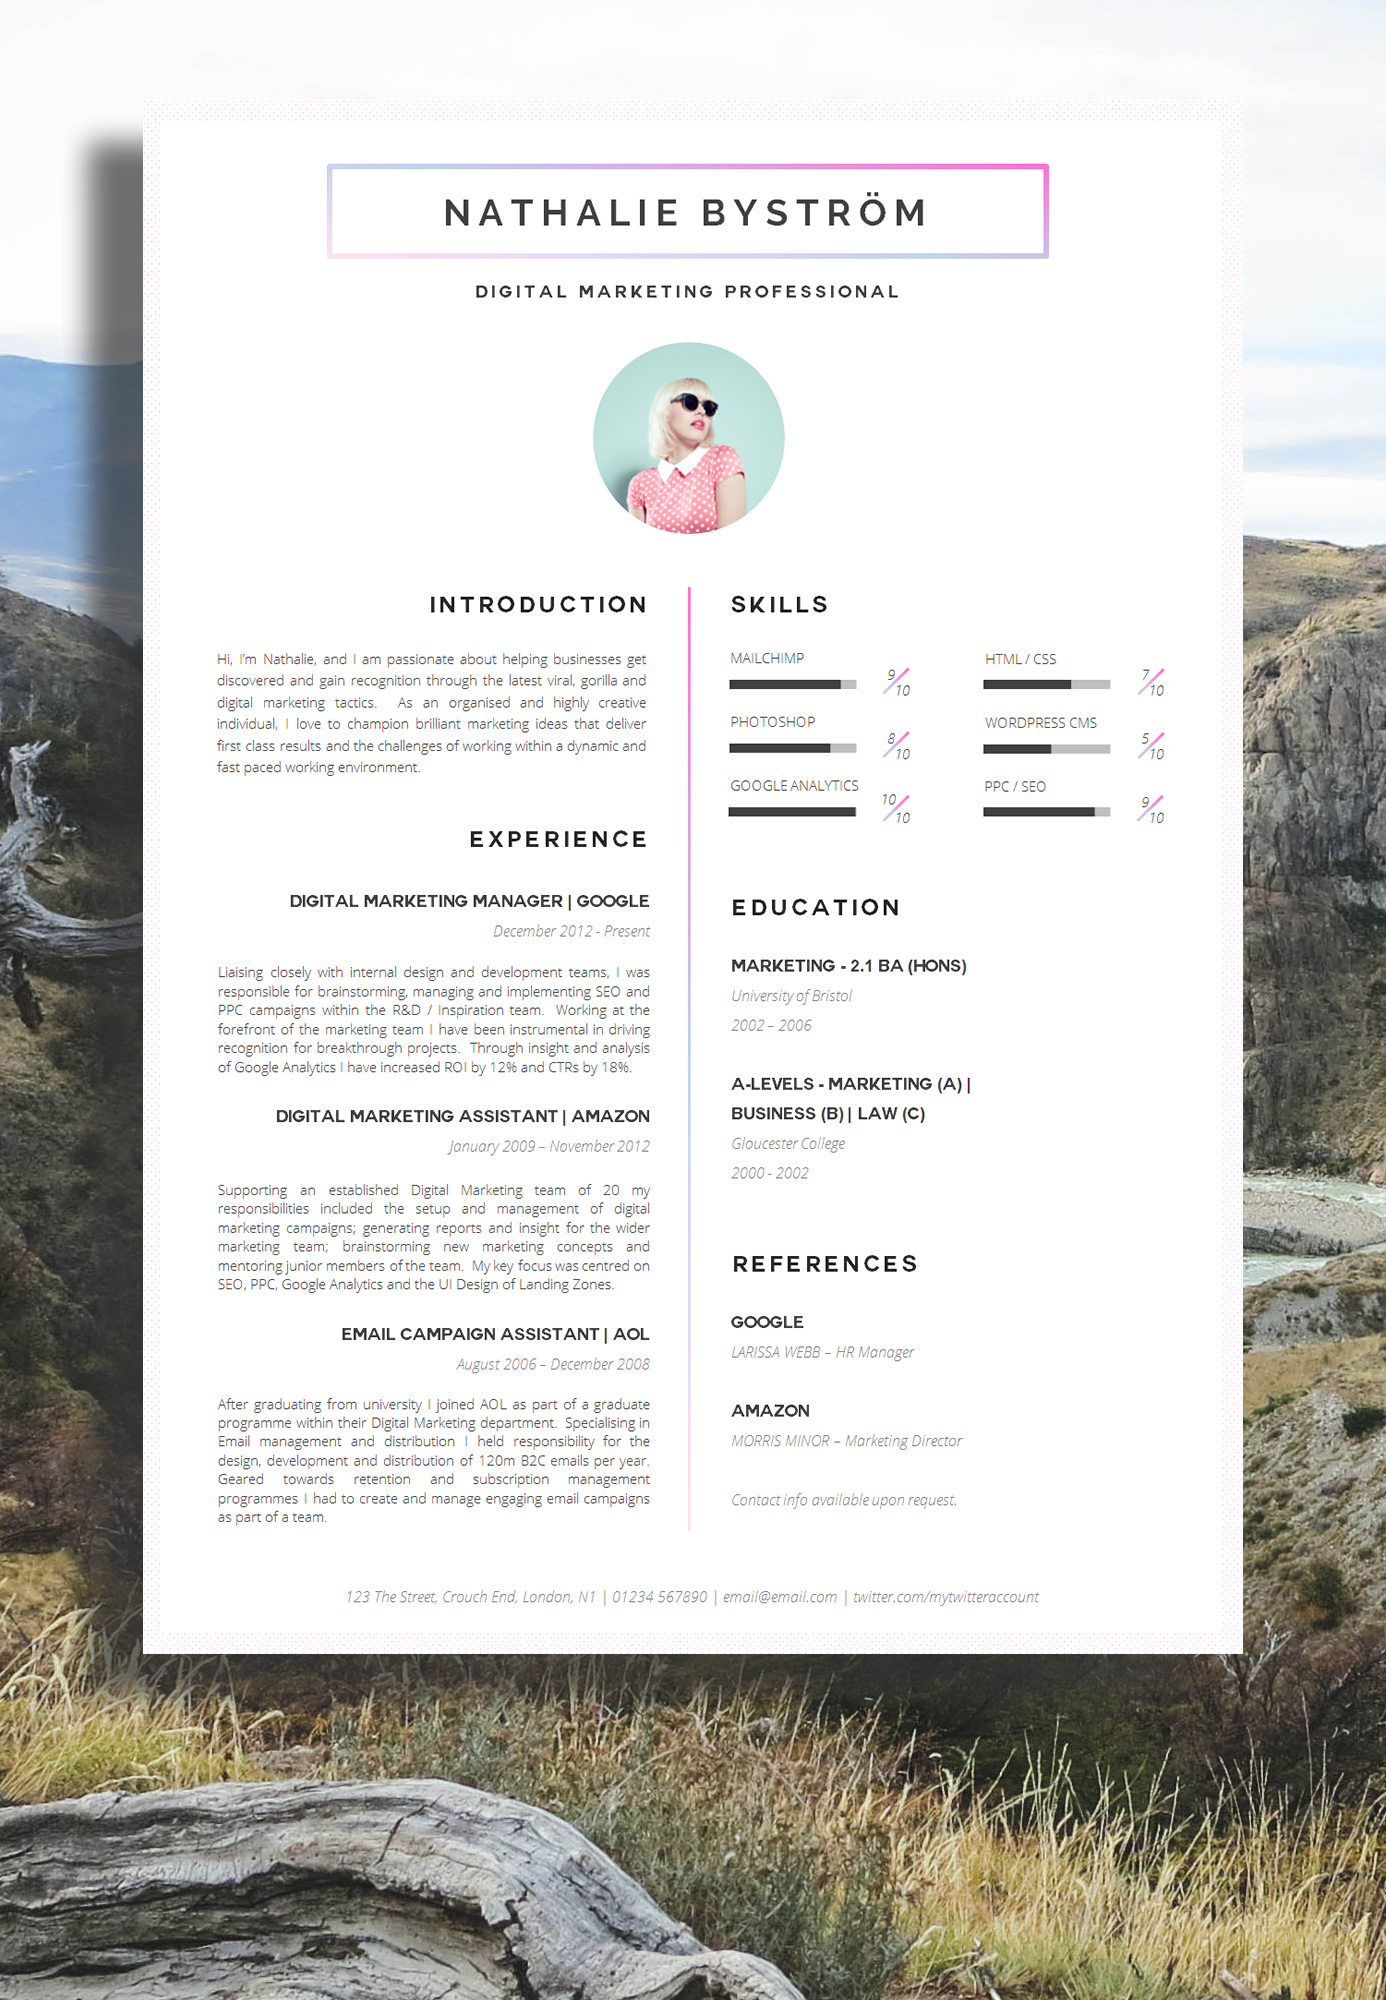 20 creative resume examples for your inspiration | skillroads